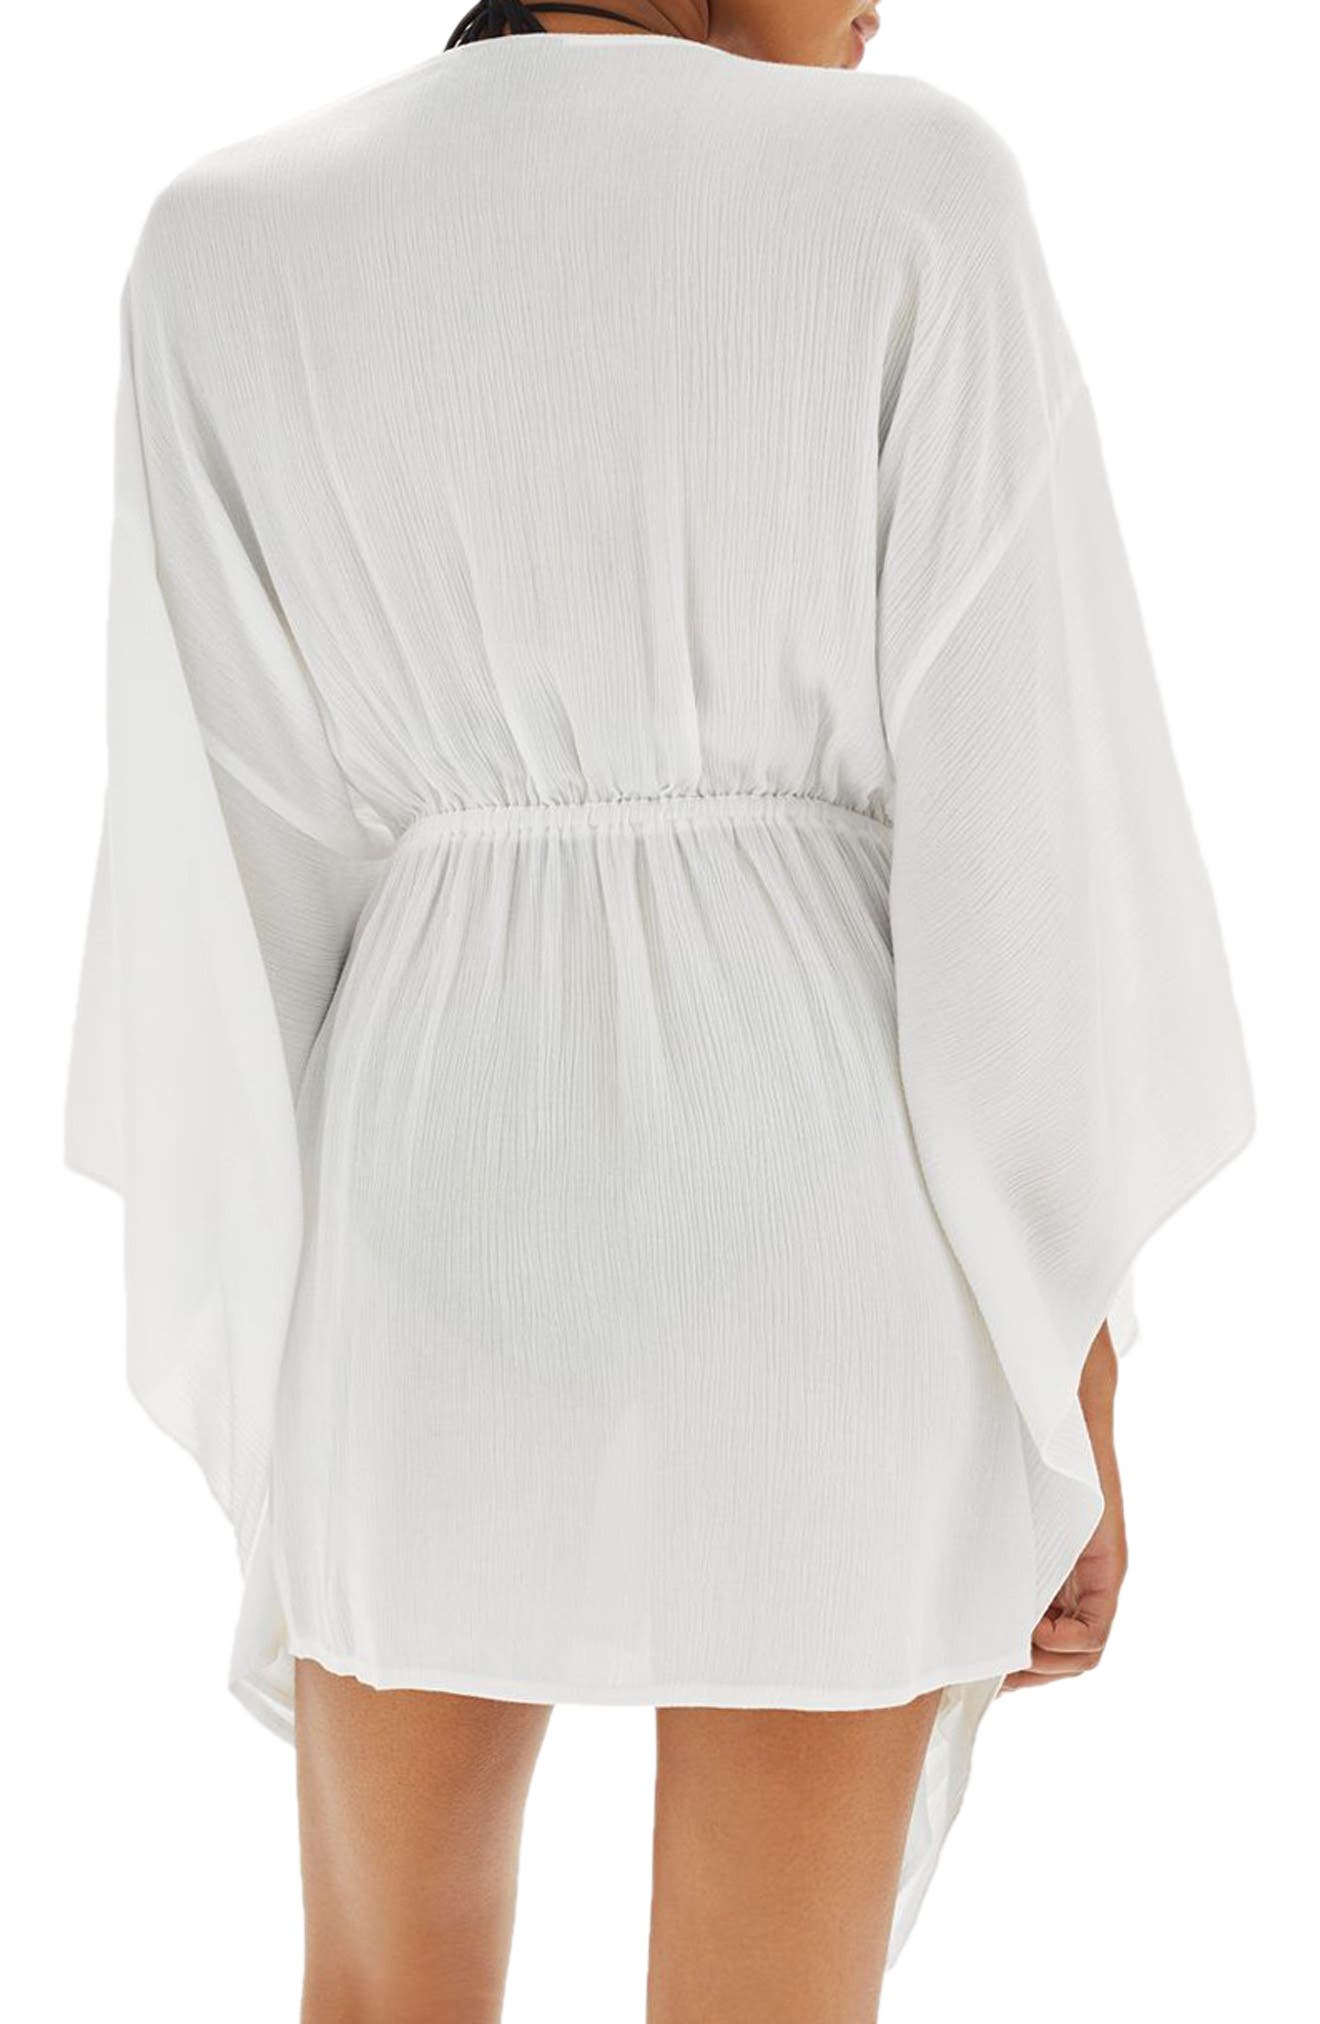 Ladder Stitch Cover-Up Caftan,                             Alternate thumbnail 3, color,                             White